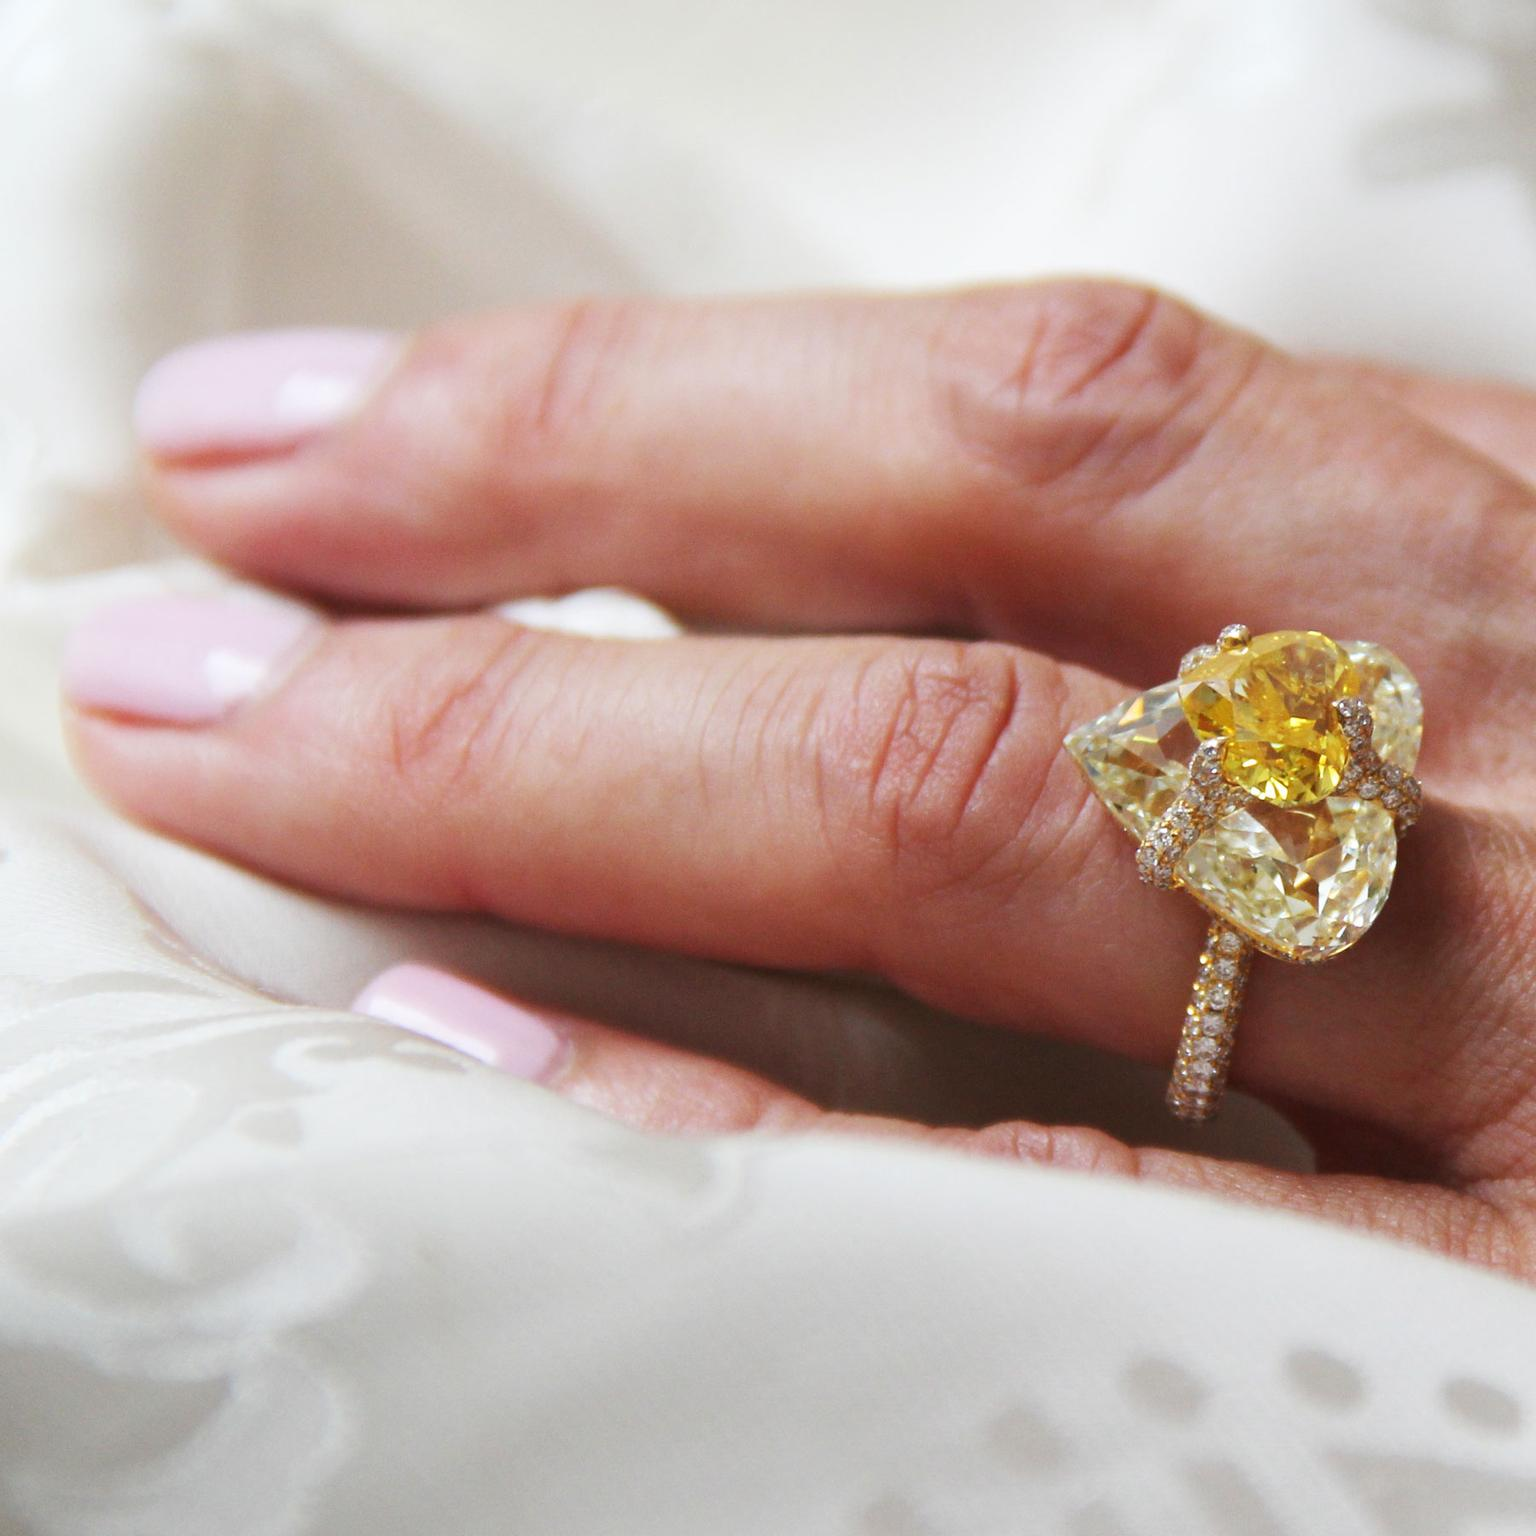 Boghossian Kissing Diamond ring with a heart-shape orangy yellow diamond atop a yellow diamond